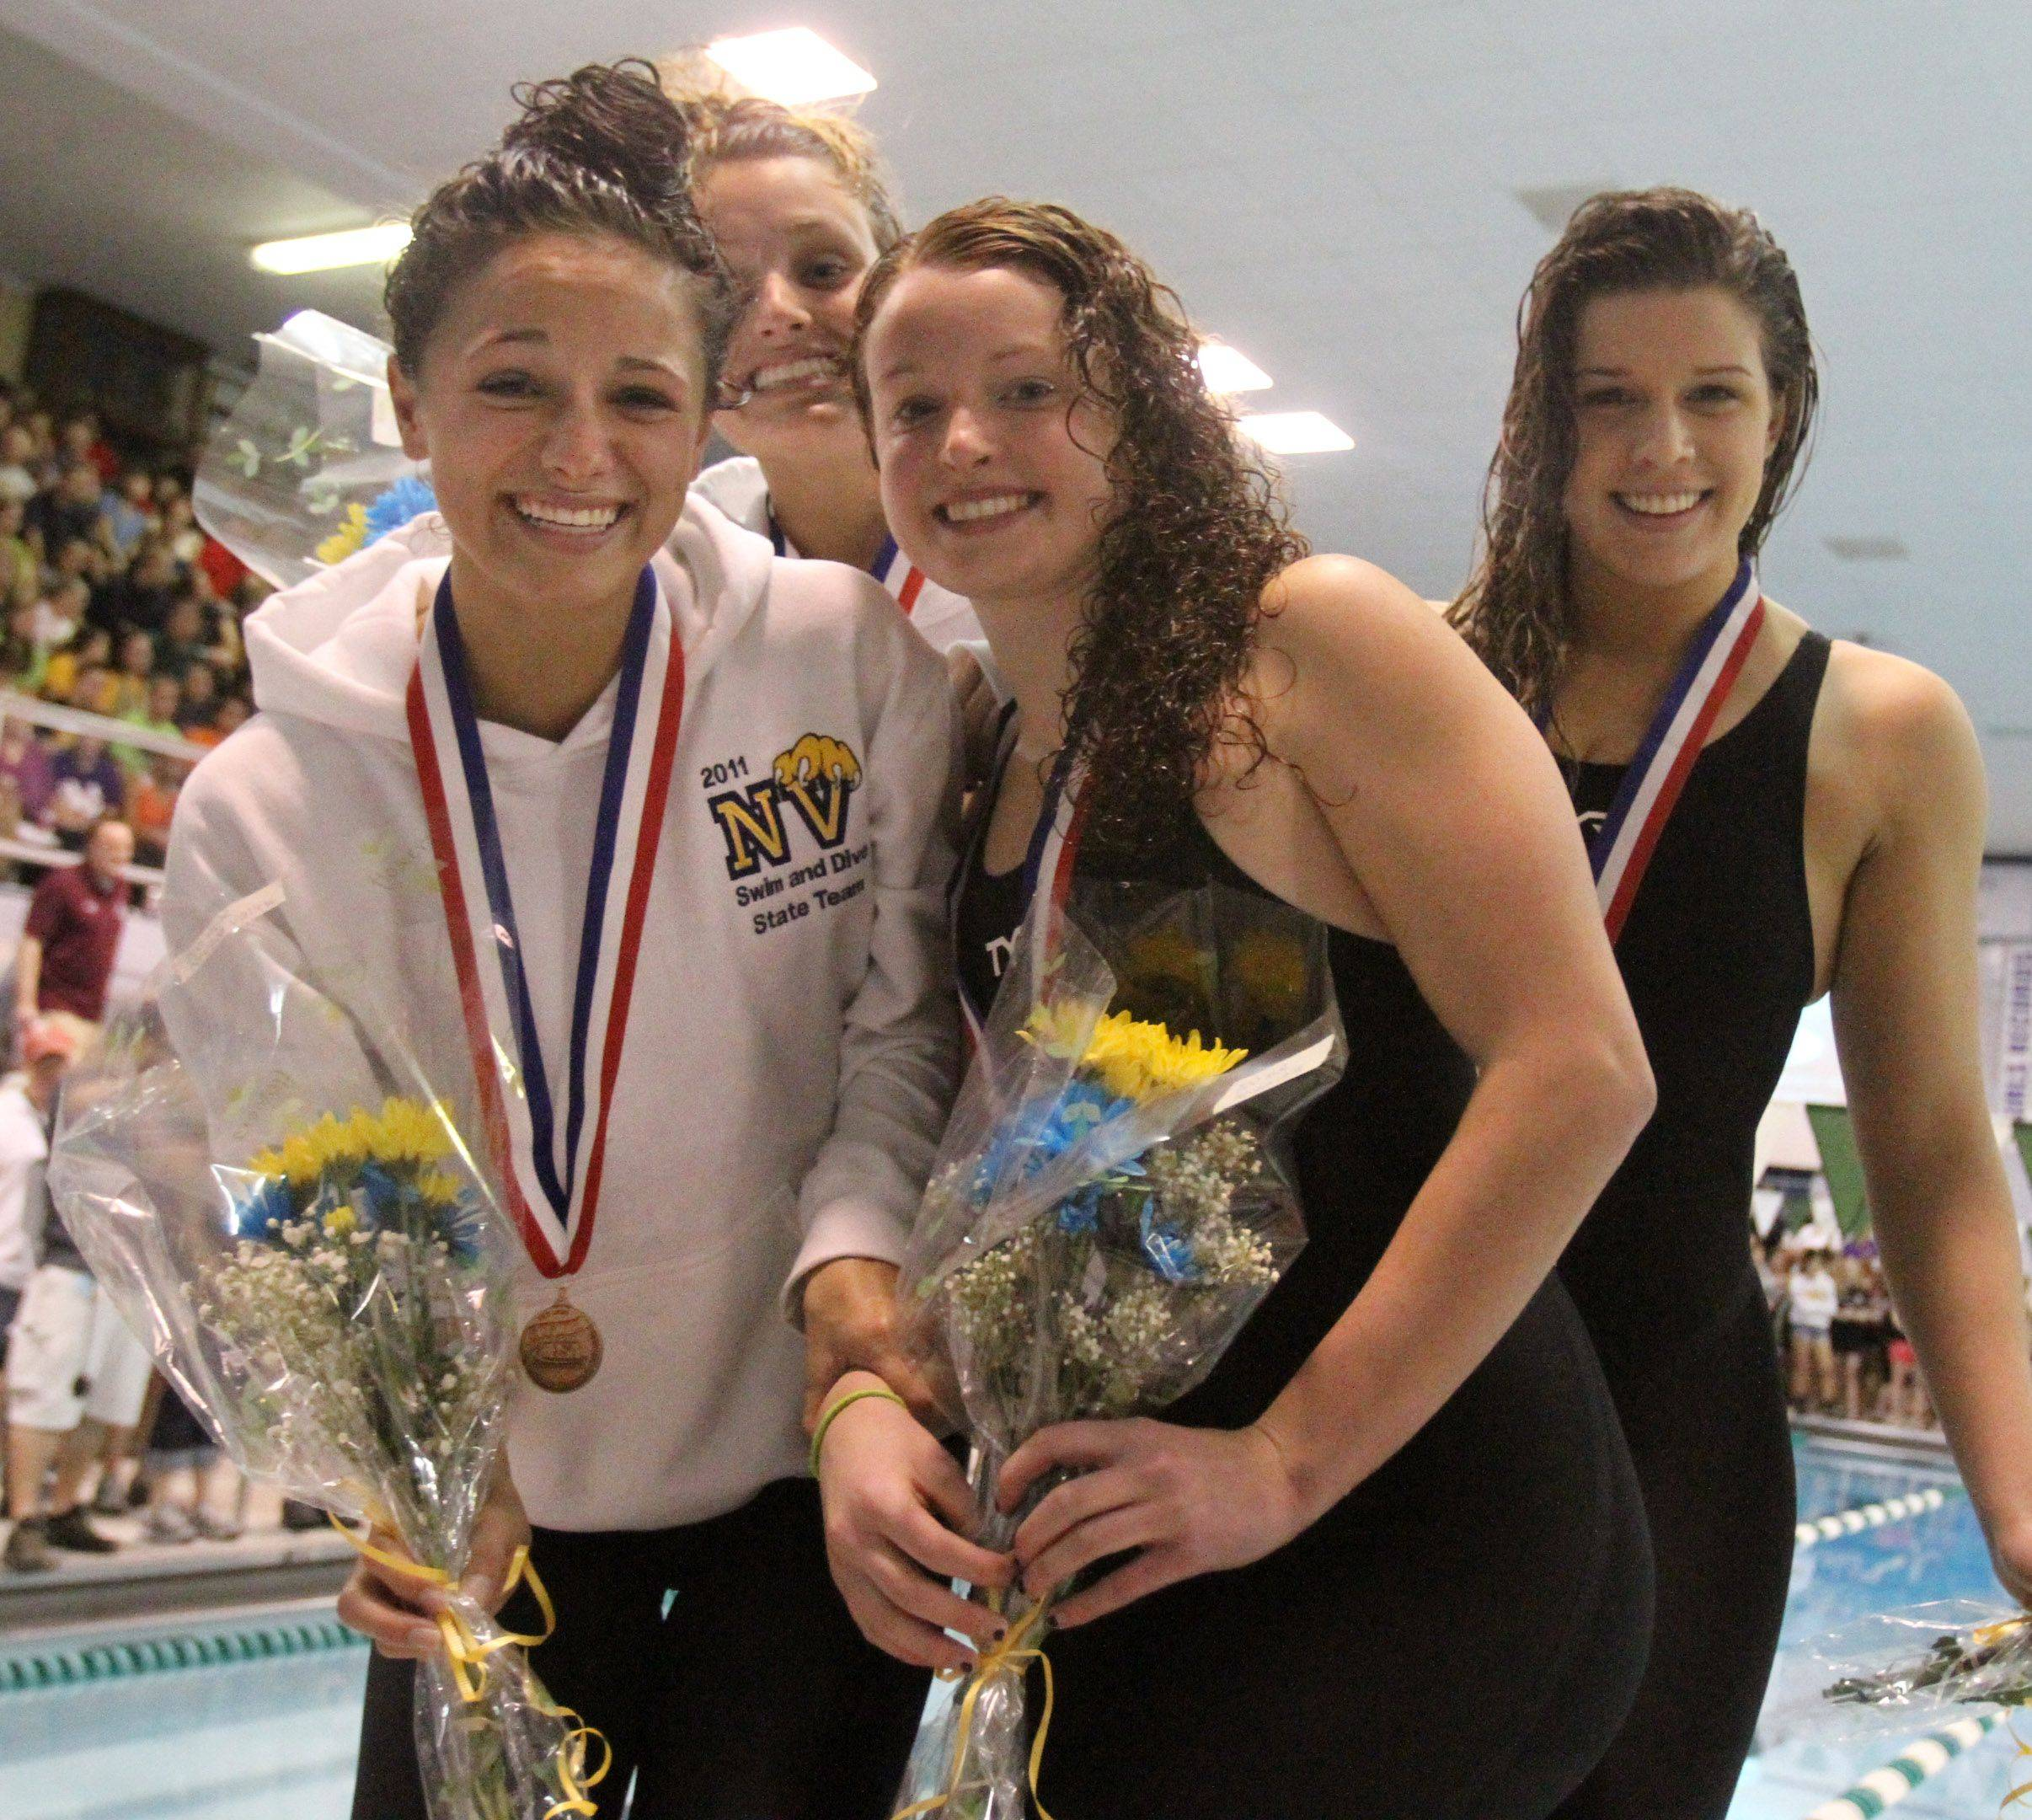 Neuqua Valley's Gia Dalesandro, Courtney Taylor, April Niccolai, and Maggie Maxstadt placed sixth in the 200-yard medley relay at the IHSA state championships in Winnetka on Saturday, November 19th.